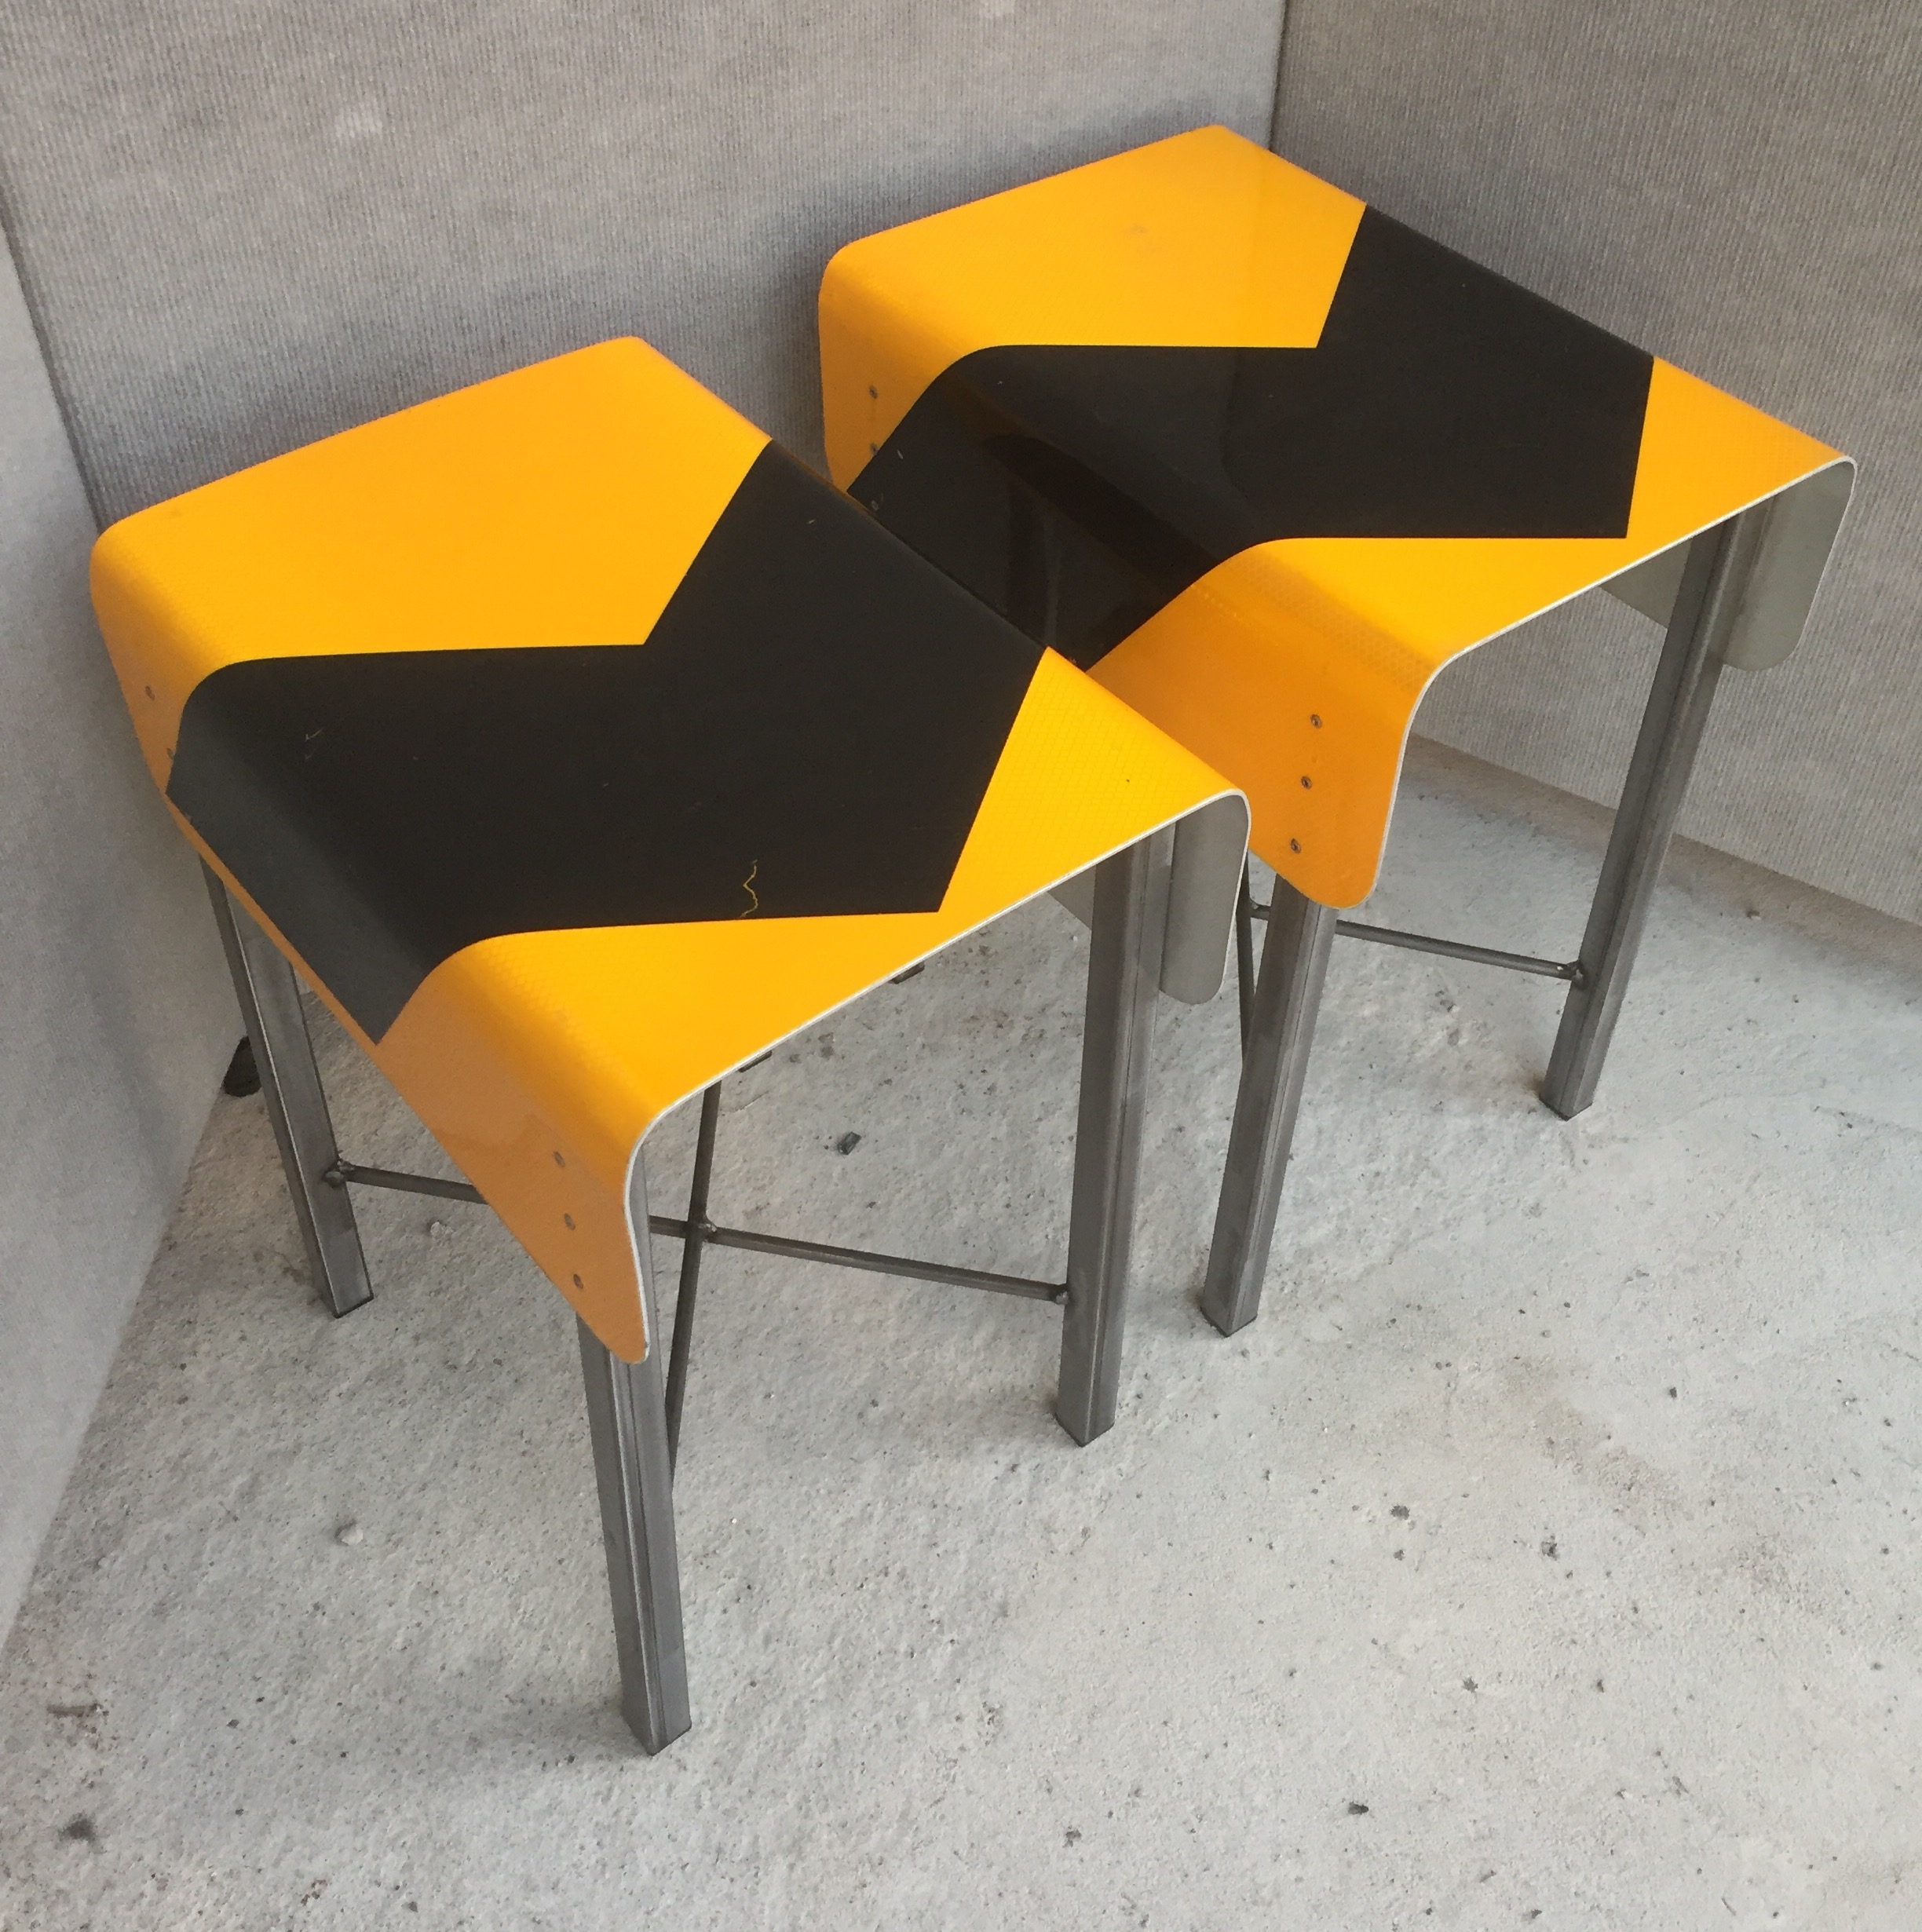 caution side tables.jpg